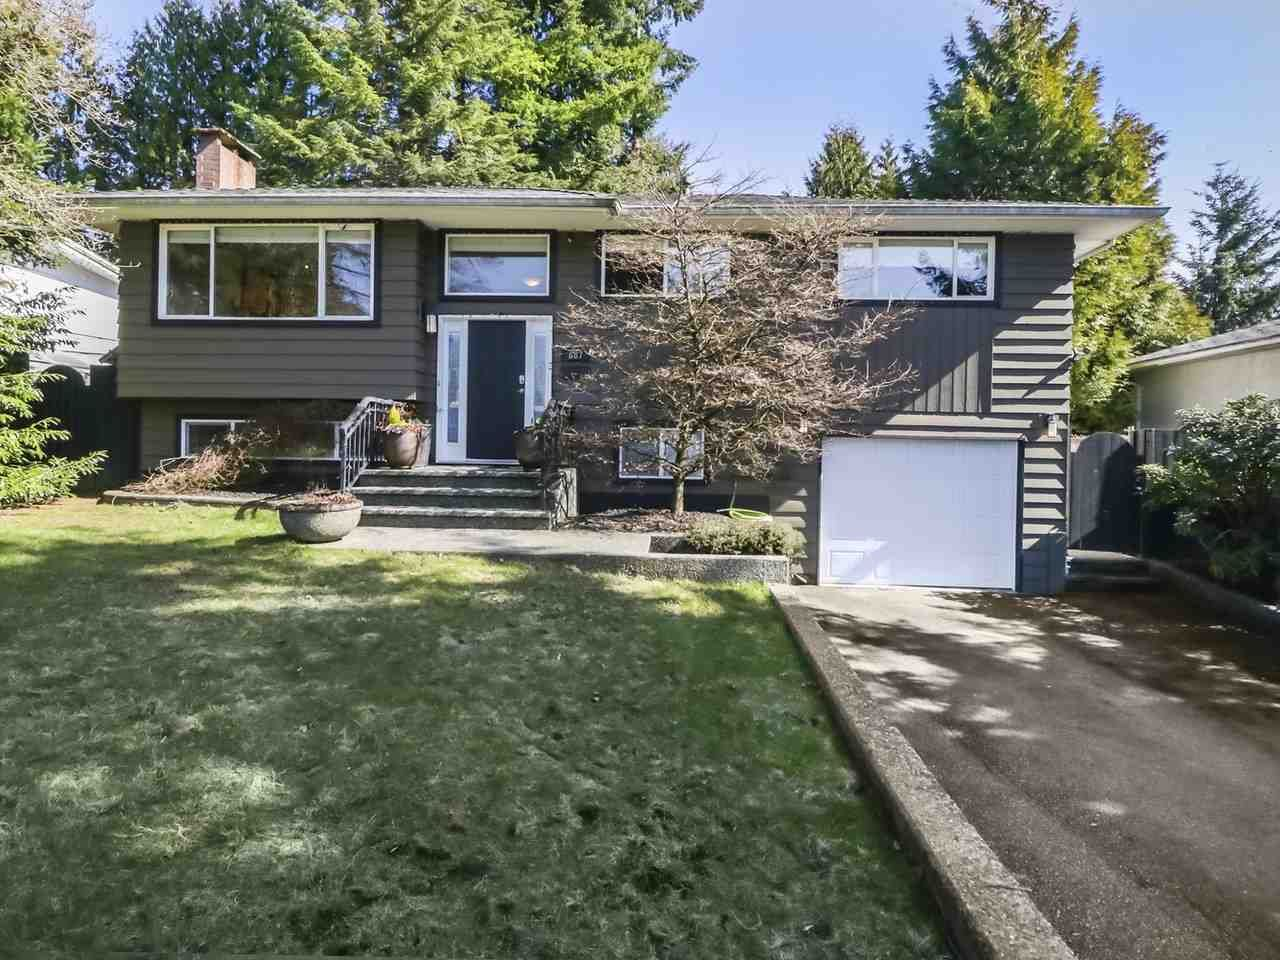 Main Photo: 687 FIRDALE Street in Coquitlam: Central Coquitlam House for sale : MLS®# R2447108